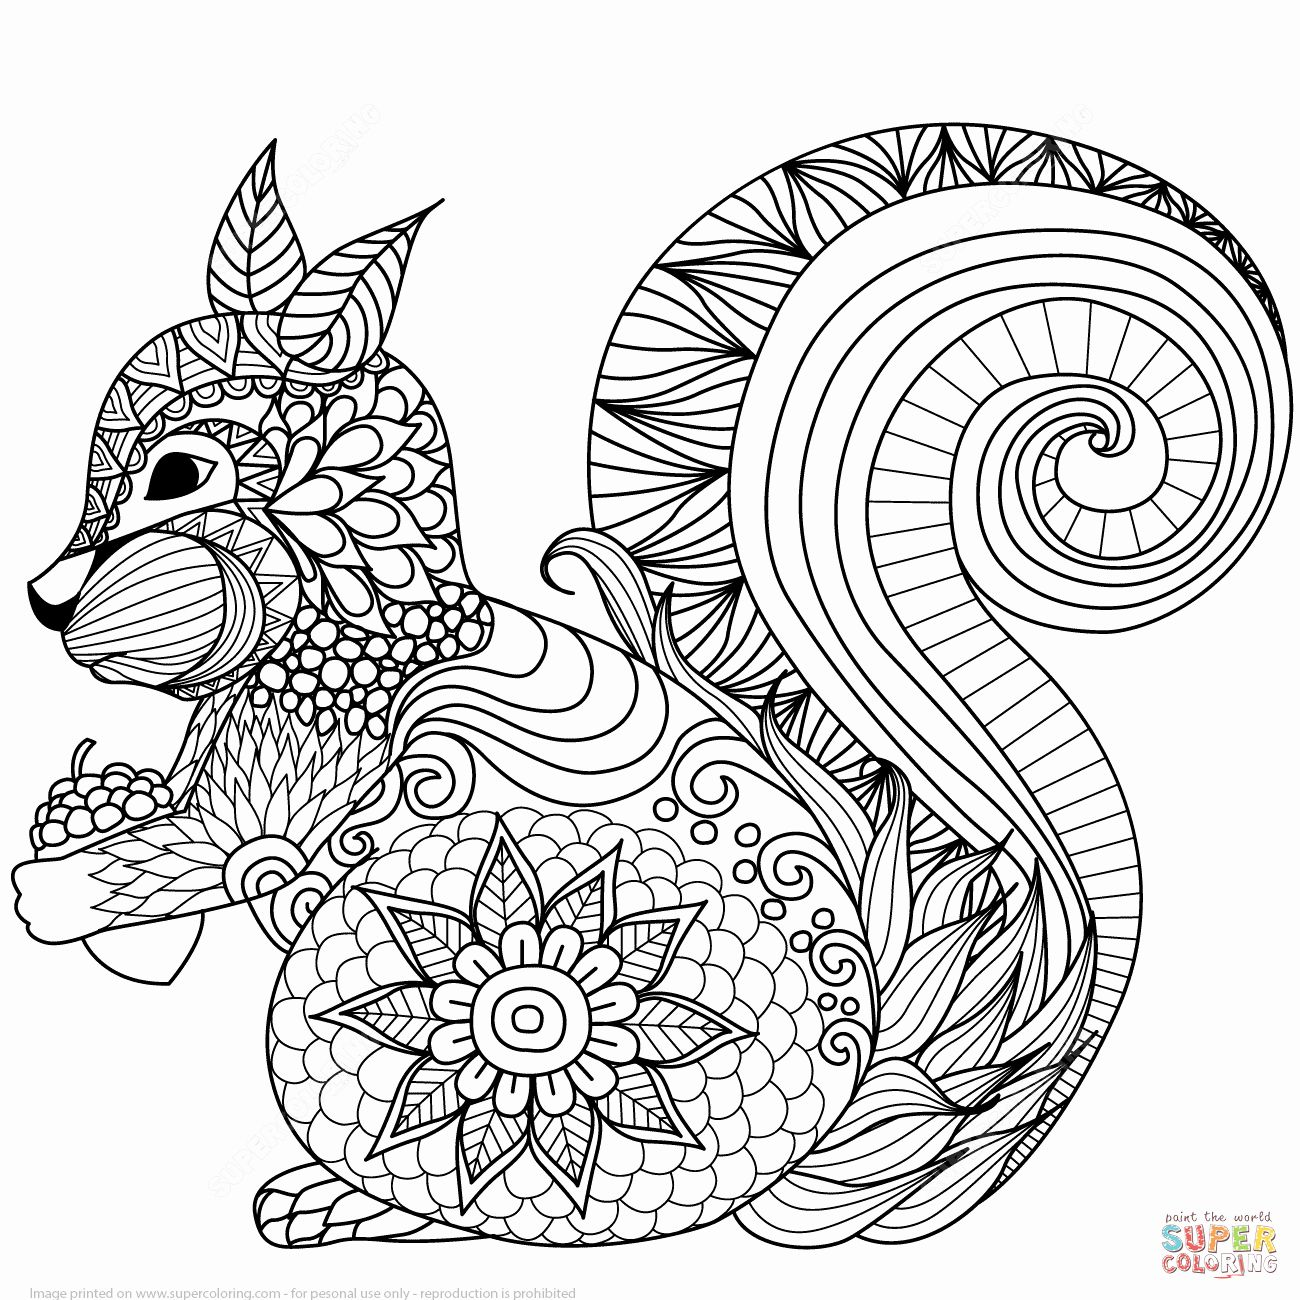 Pin By Eda Nur On Cizim Squirrel Coloring Page Mandala Coloring Pages Animal Coloring Books